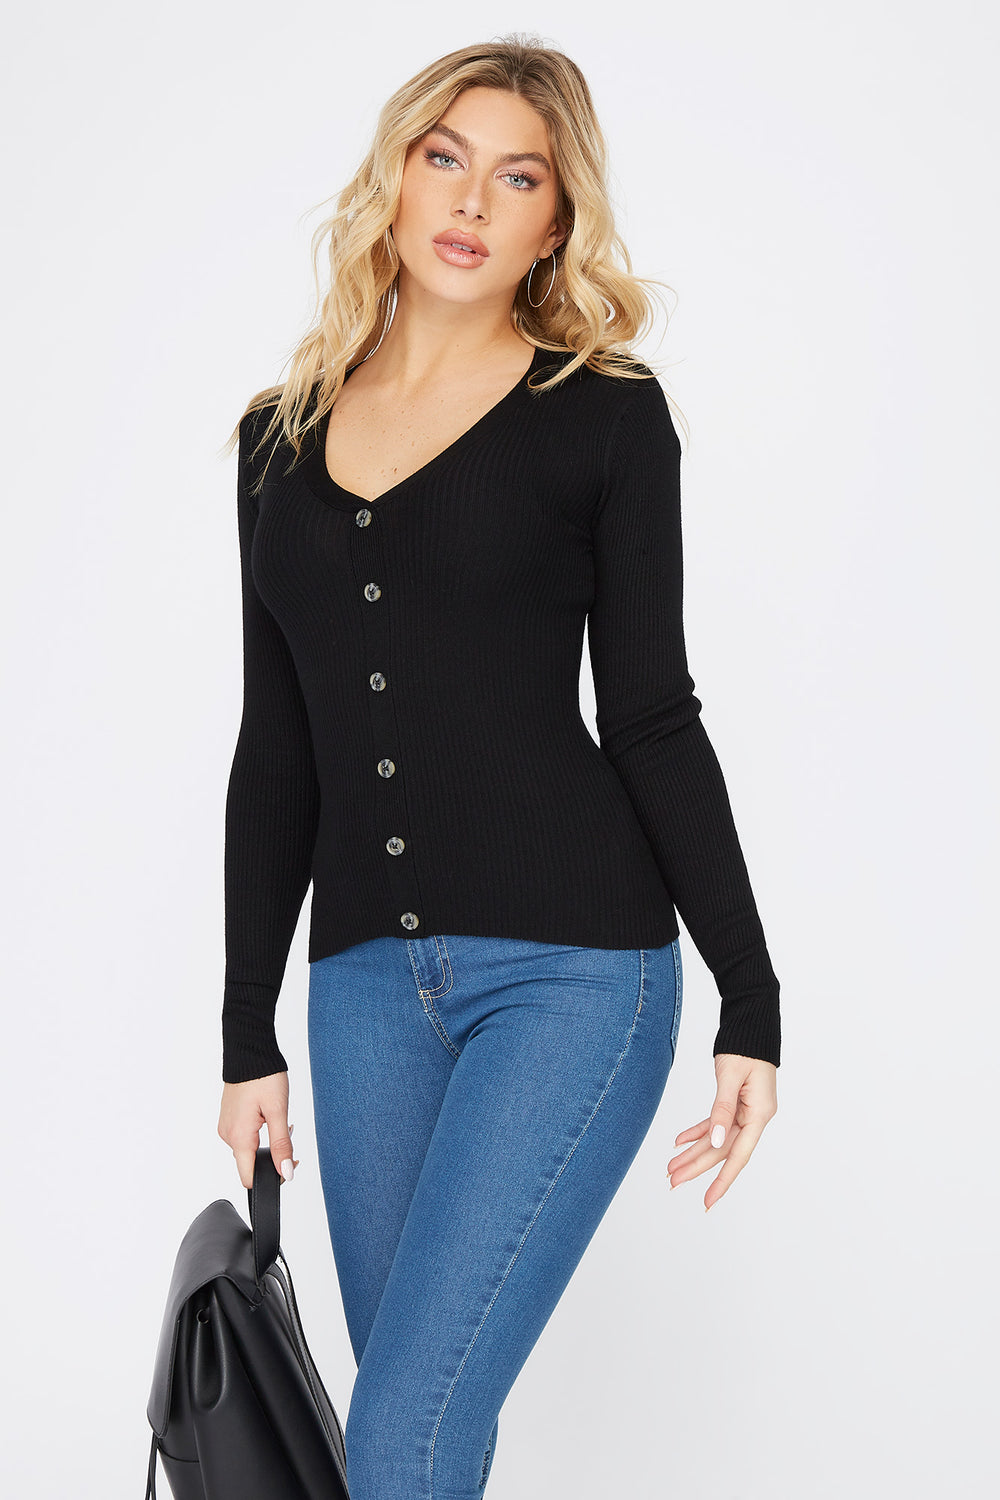 Ribbed V-Neck Button Long Sleeve Black